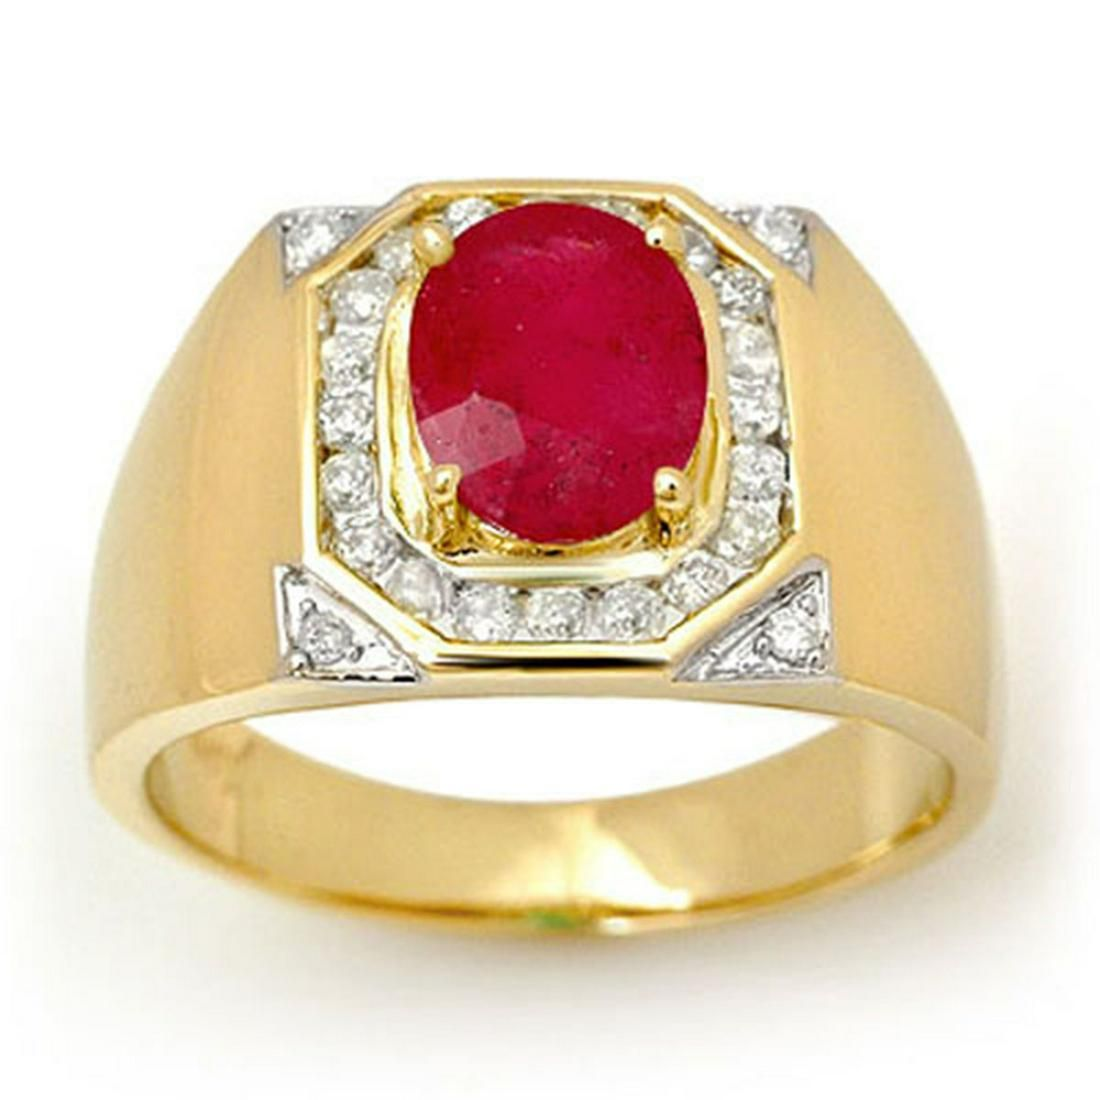 3.60 ctw Ruby & Diamond Men's Ring 14K Yellow Gold -